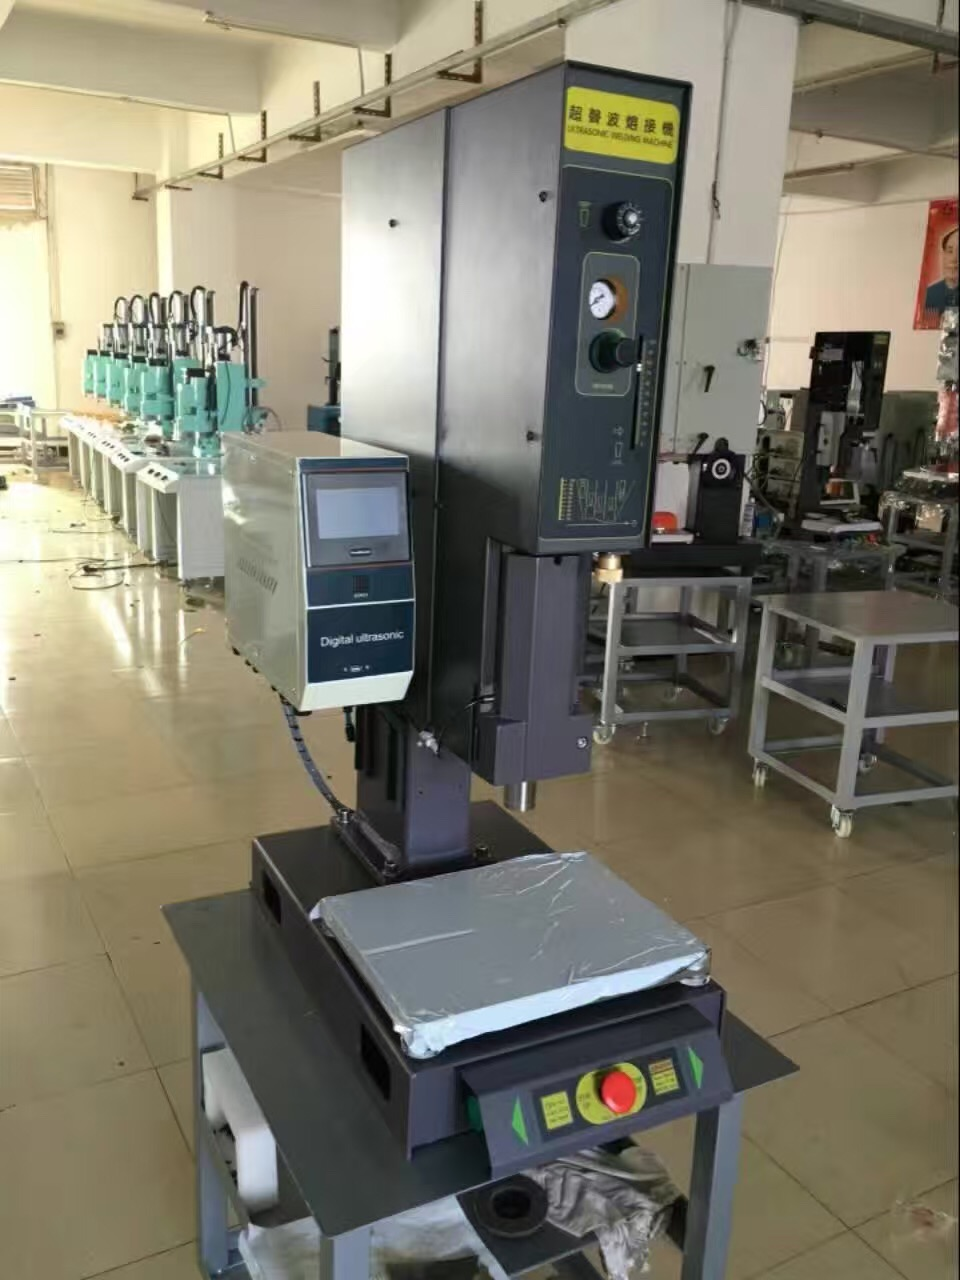 1500W/15khz ultrasonic plastic welding equipment,,1500W Intelligent Digital Ultrasonic Welding Machine,welder machine цены онлайн